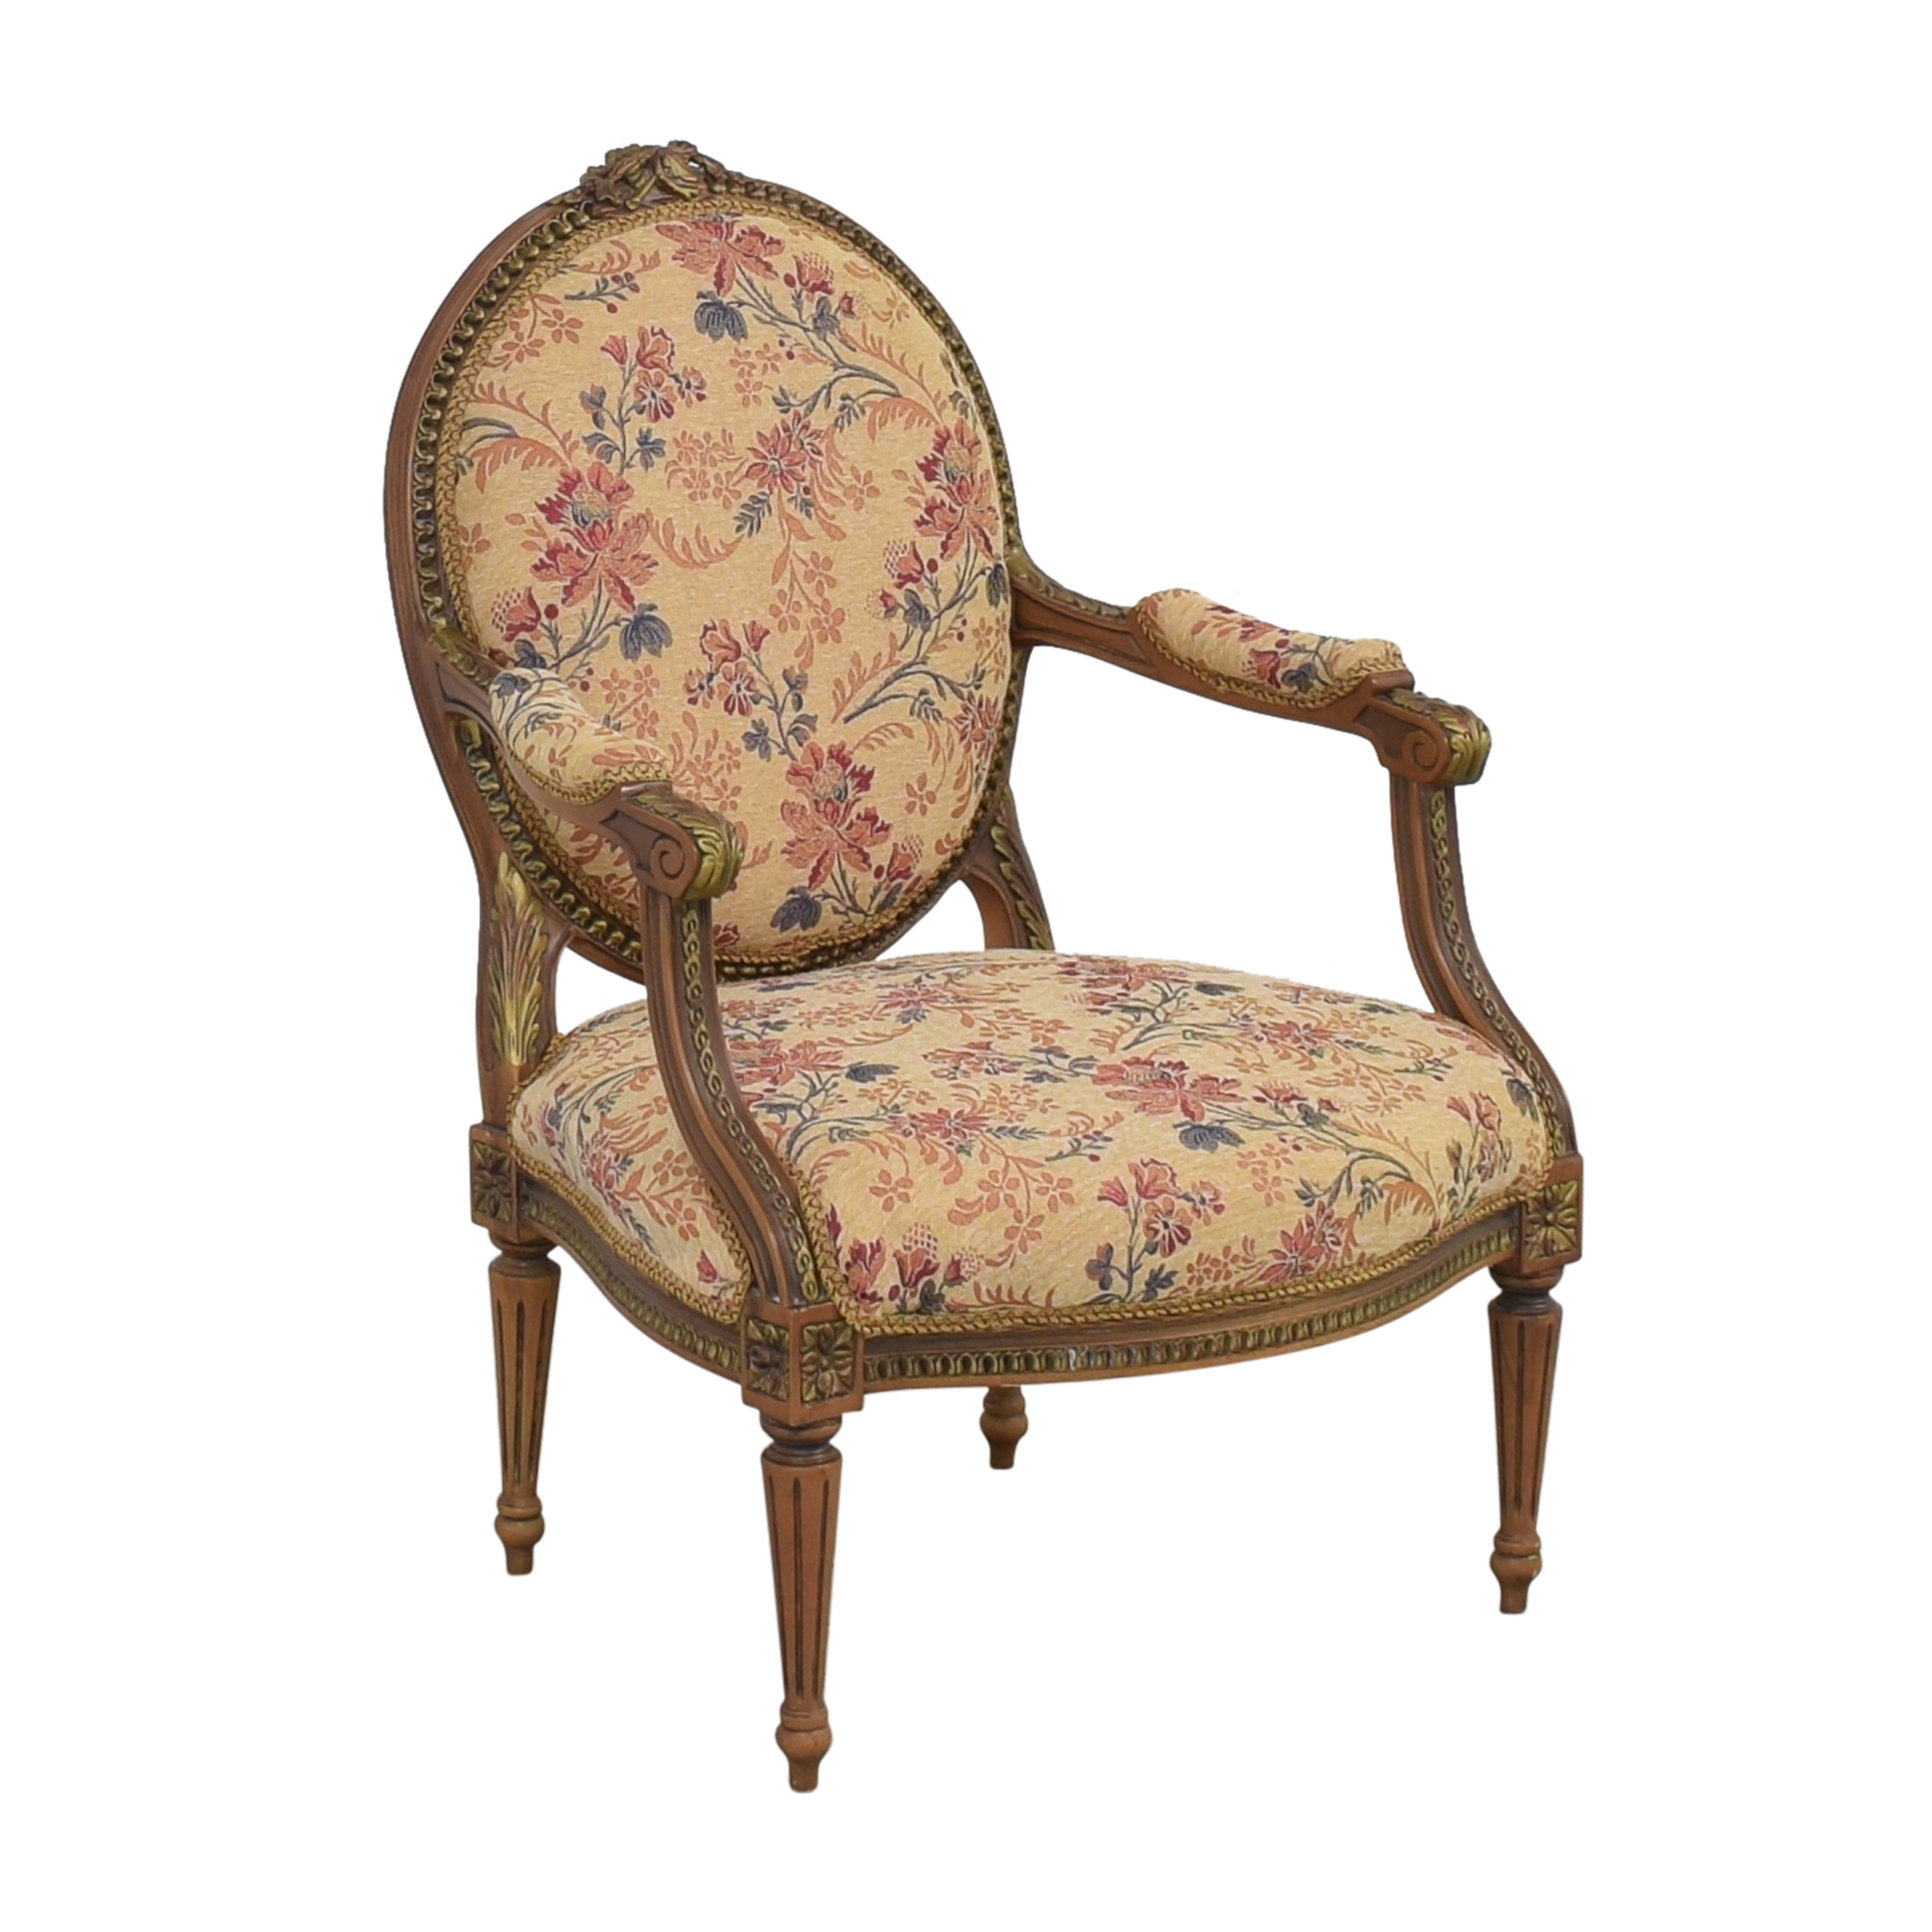 Custom Floral Upholstered Accent Chair / Chairs